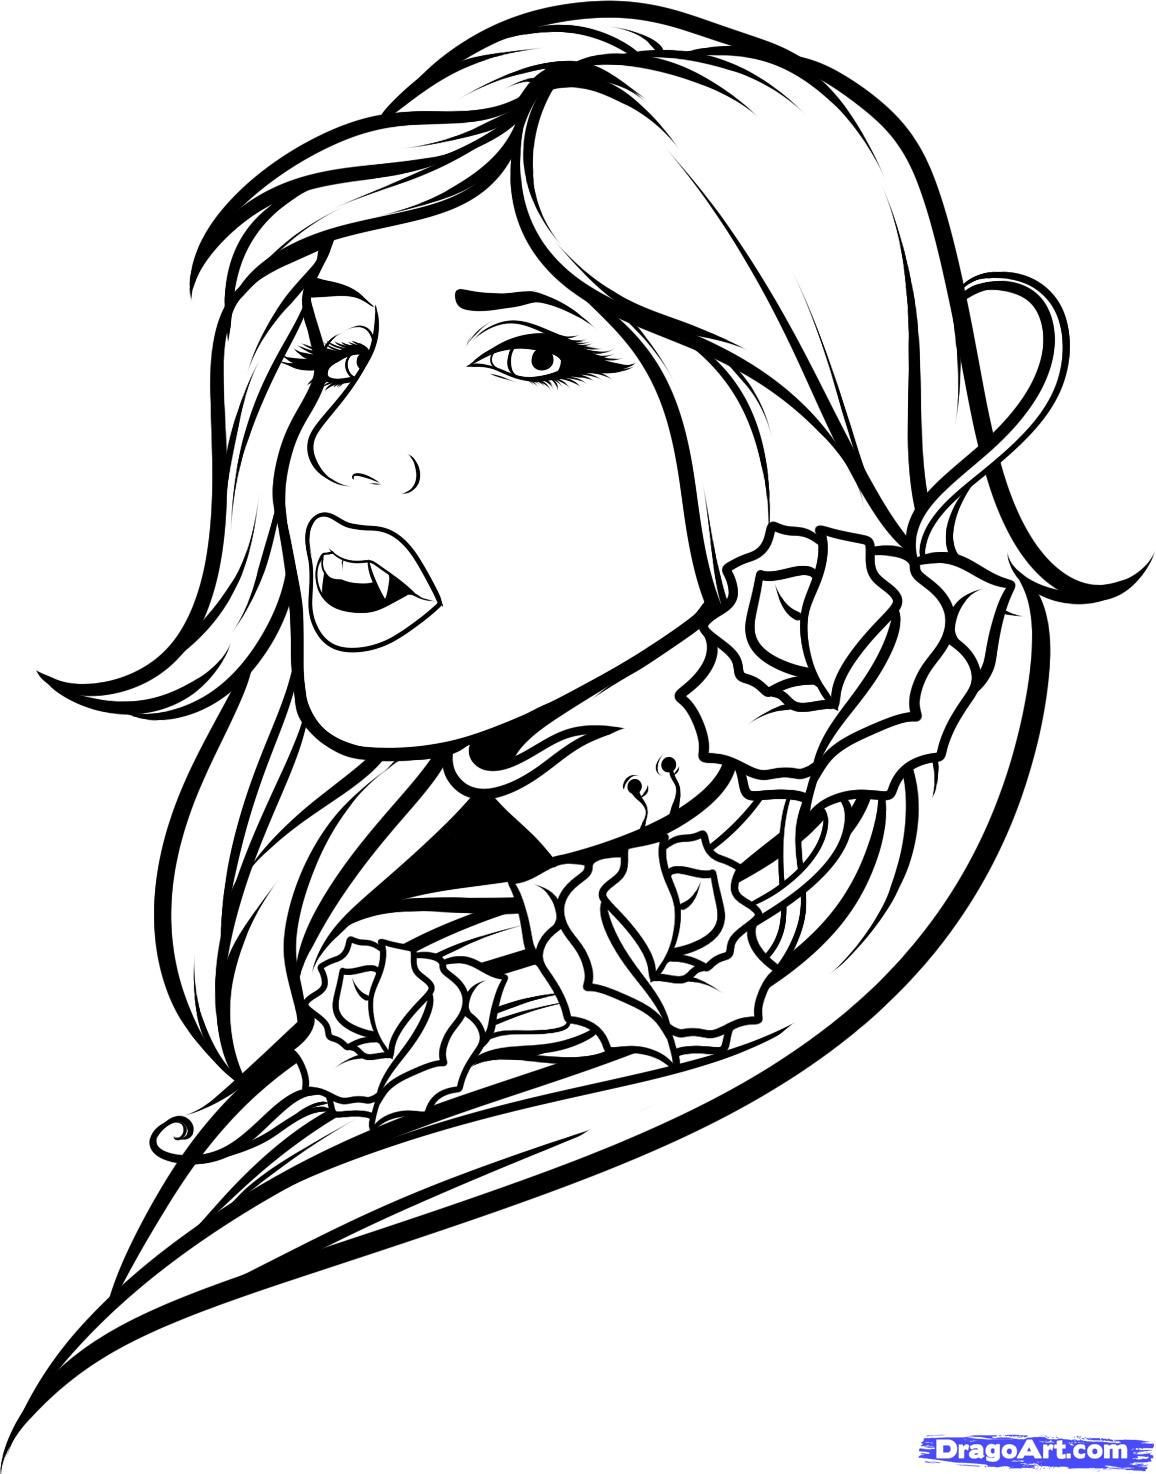 Best ideas about Vampire Coloring Pages For Adults . Save or Pin Vampire Girl vm colouring pages Now.